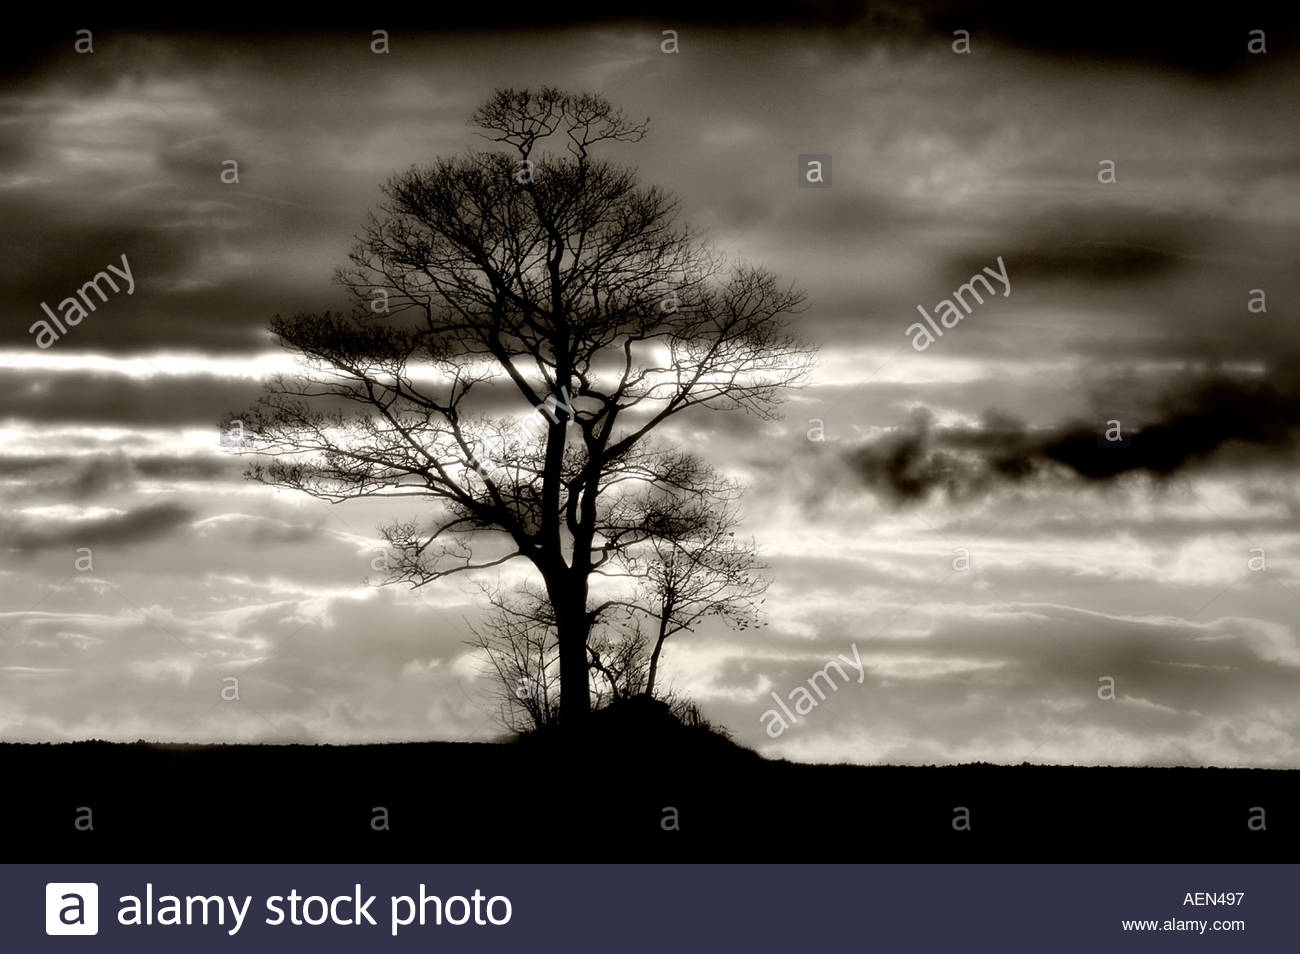 Solitary tree against a winter skyline mono image - Stock Image